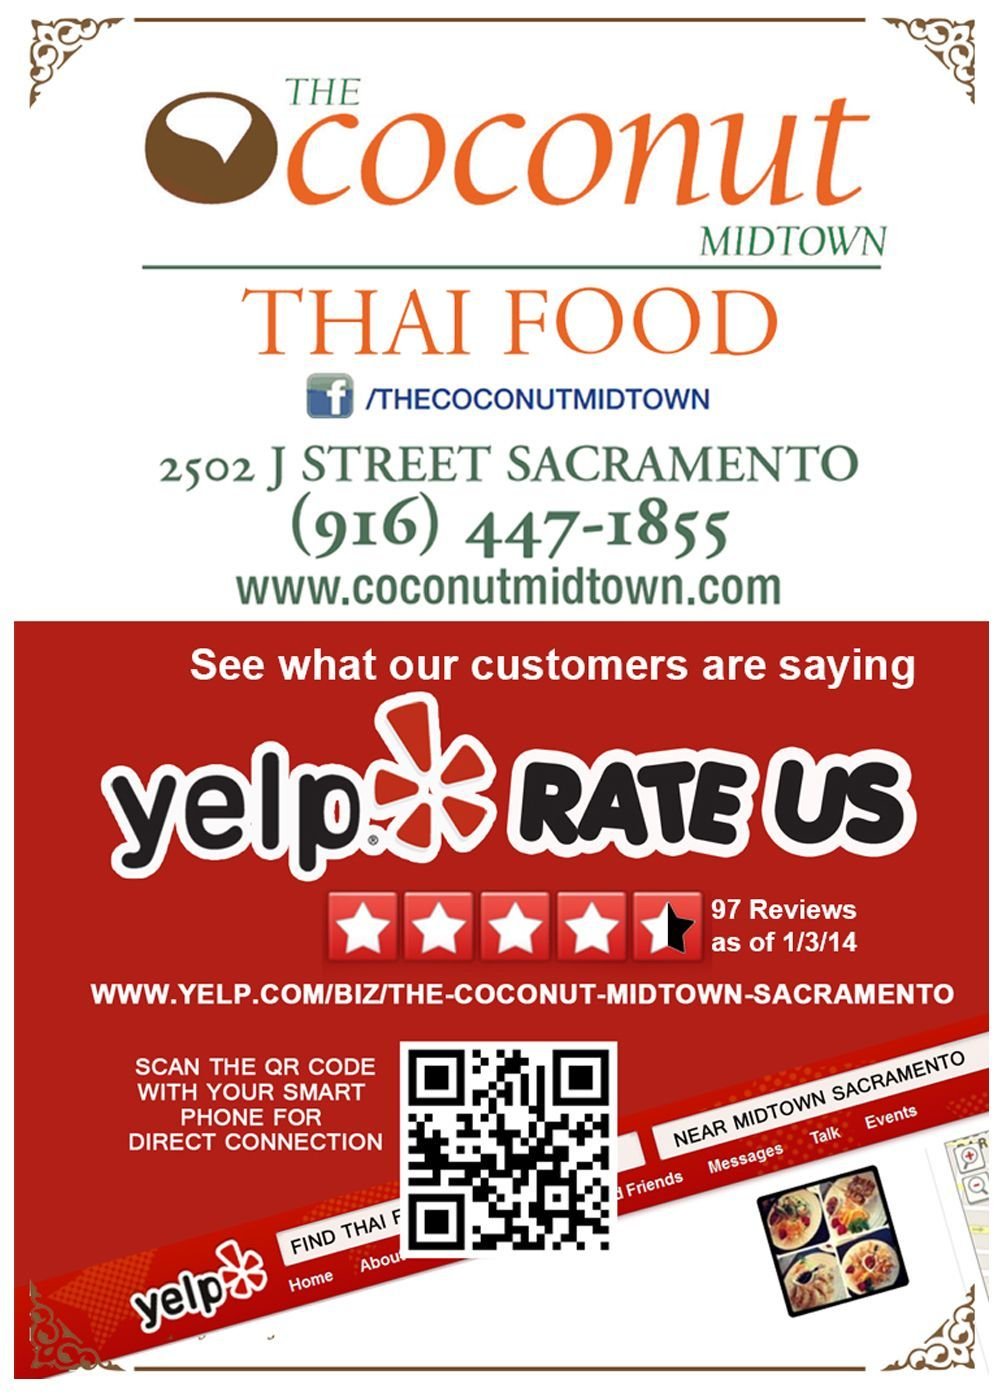 Promotion for the Coconut, this flyer pushed their yelp reviews to ...